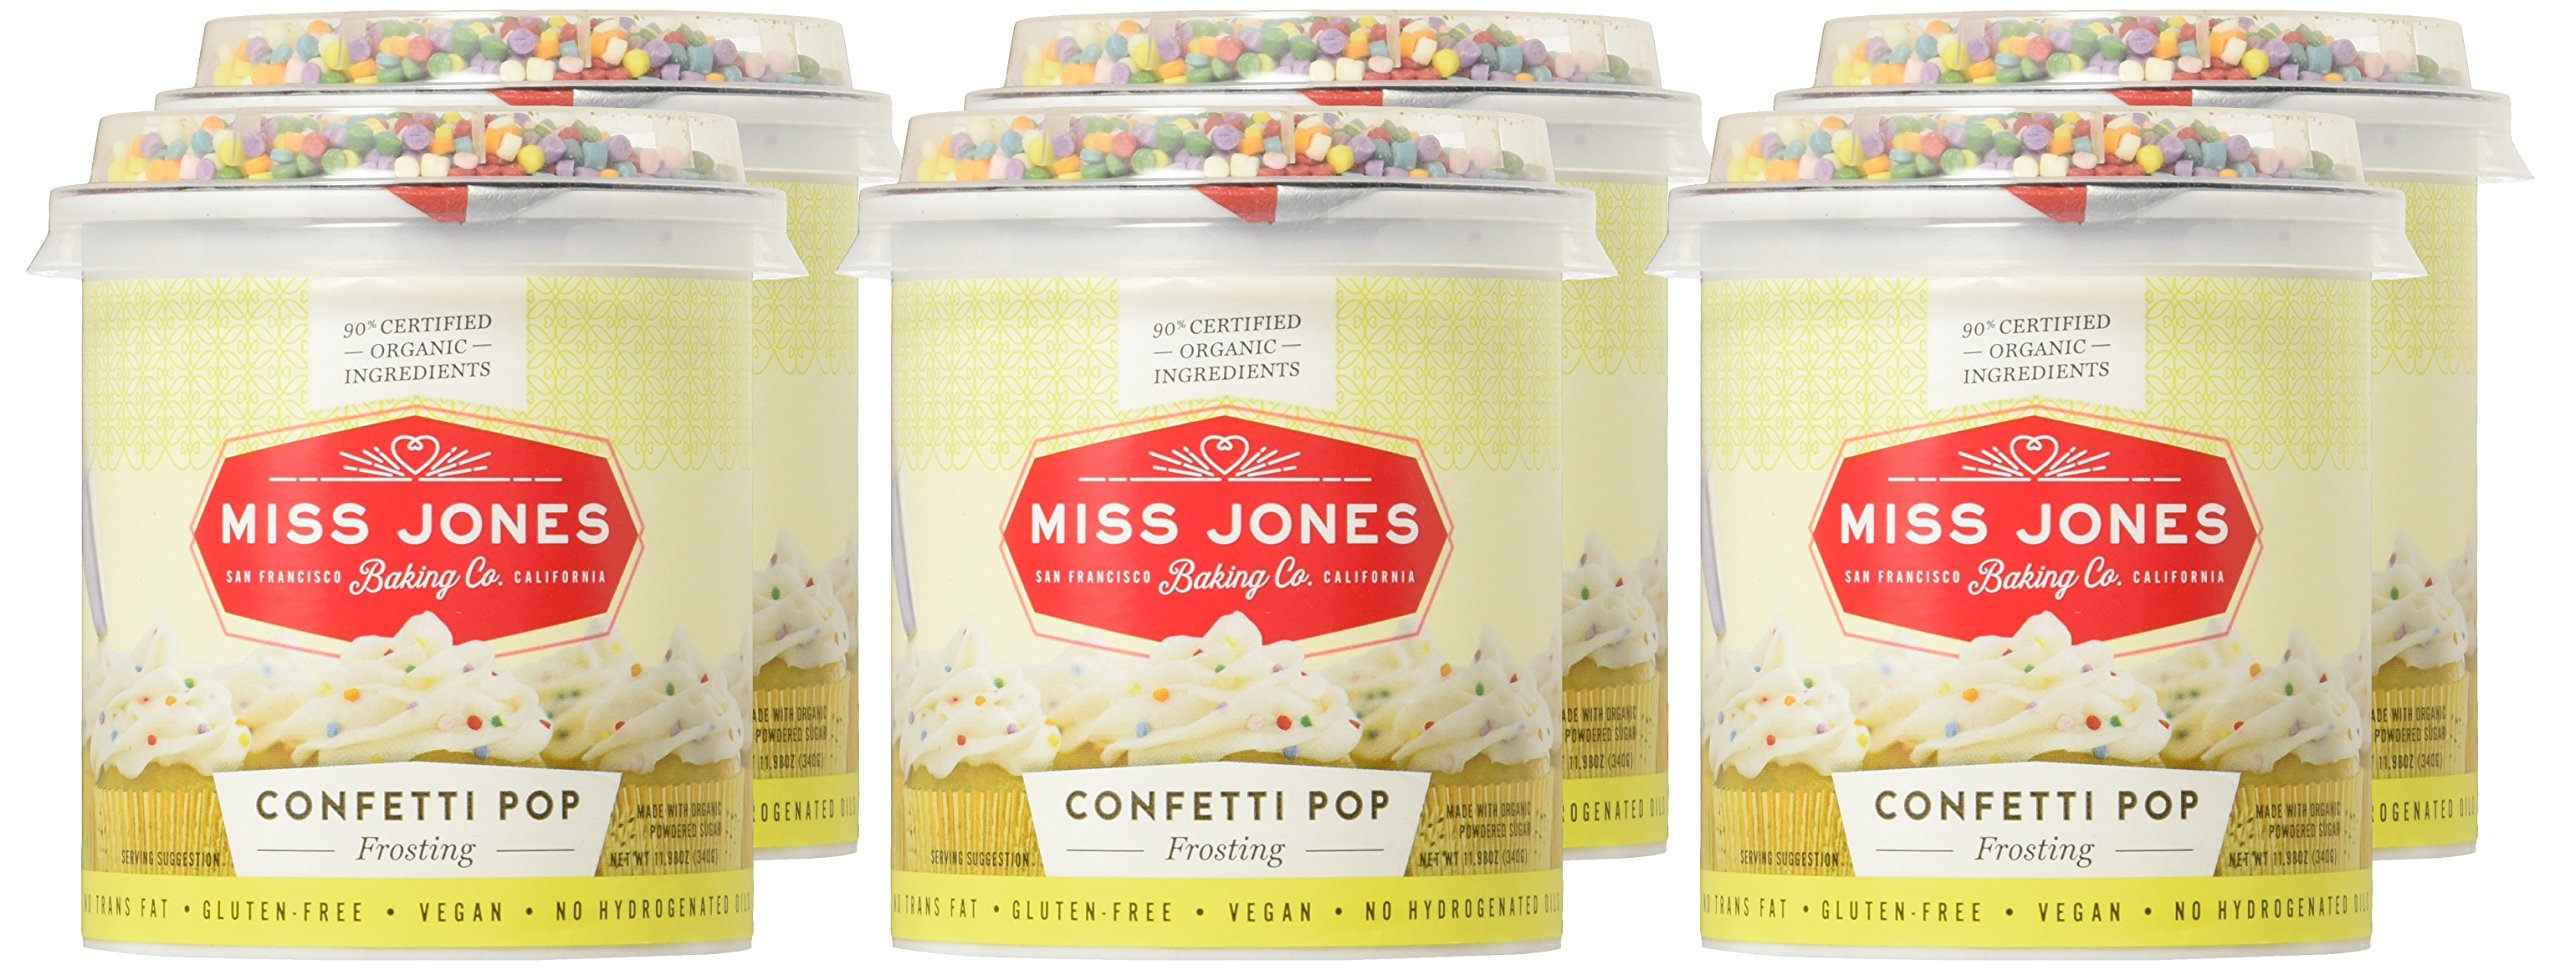 Miss Jones Baking 90% Organic Birthday Buttercream Frosting, Perfect for Icing and Decorating, Vegan-Friendly: Confetti Pop (Pack of 6) by Miss Jones Baking (Image #2)